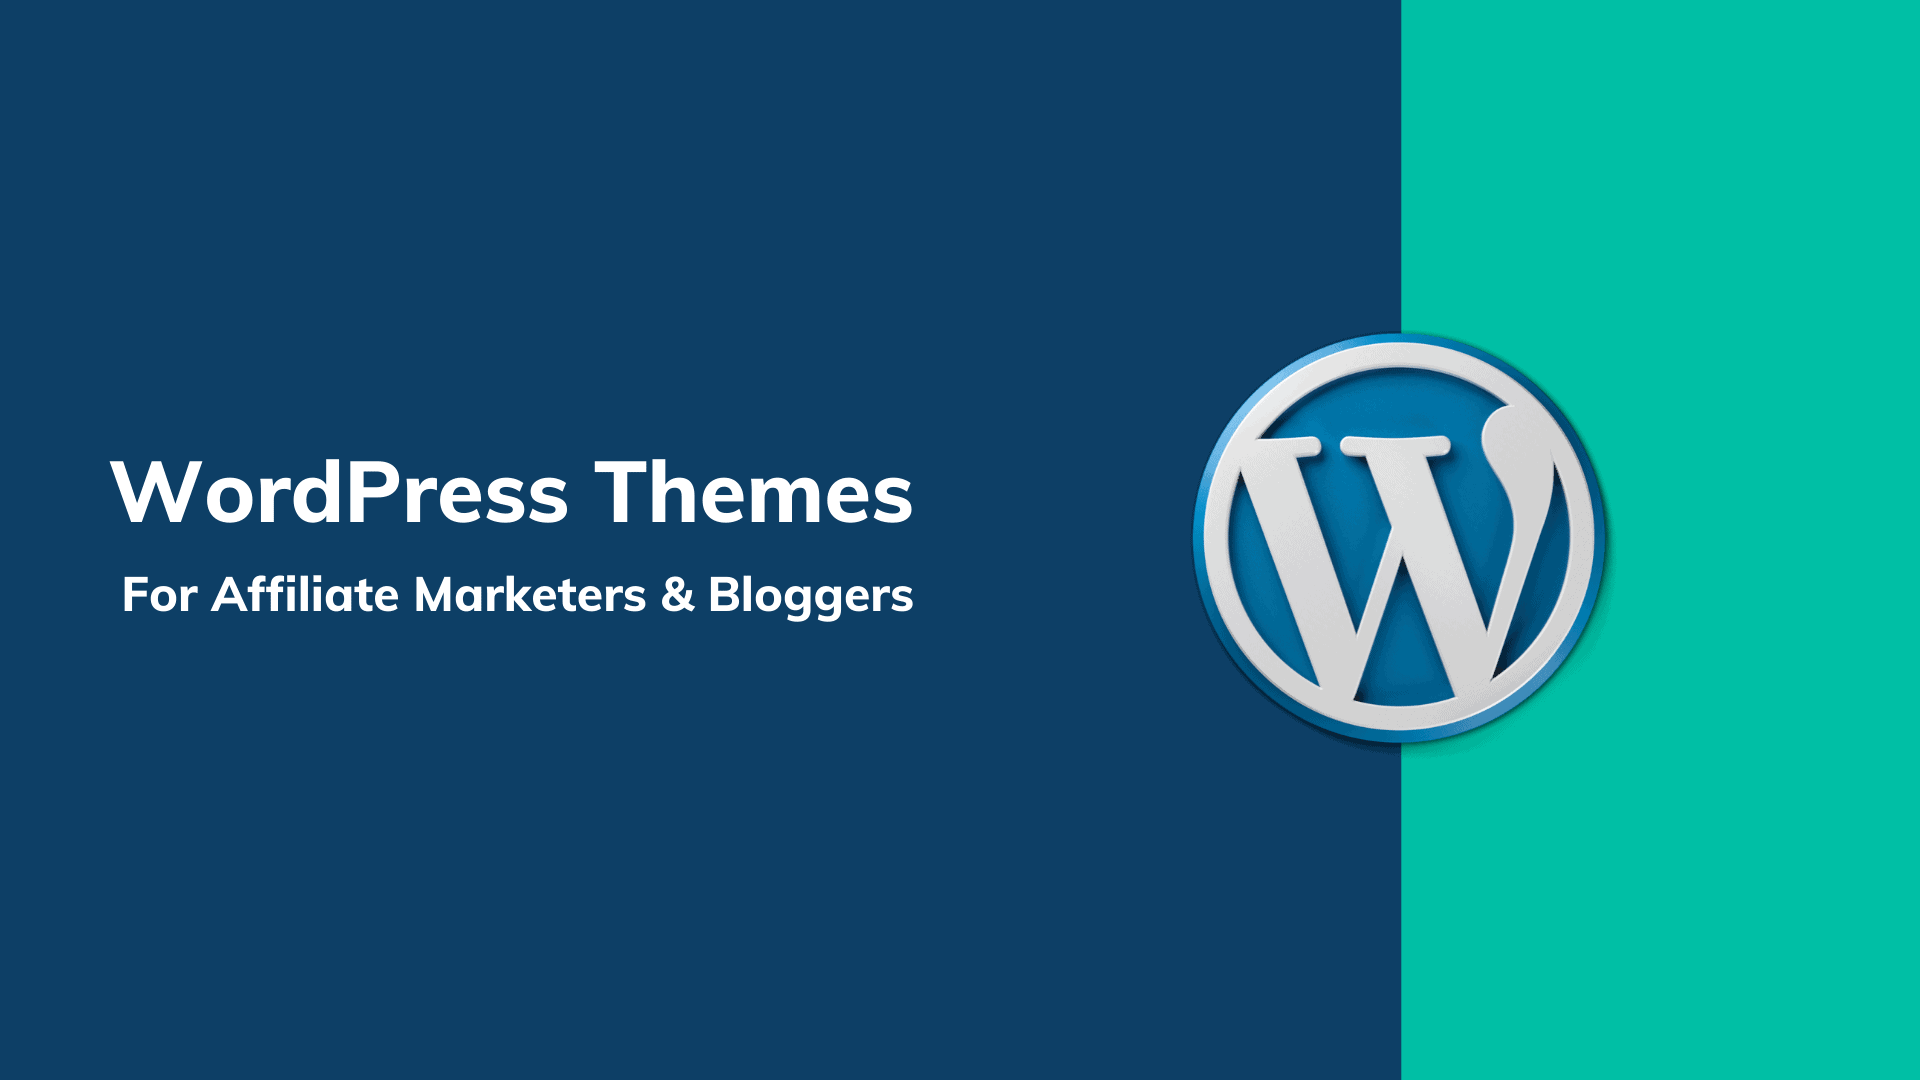 wordpress-themes-for-affiliate-marketers-bloggers